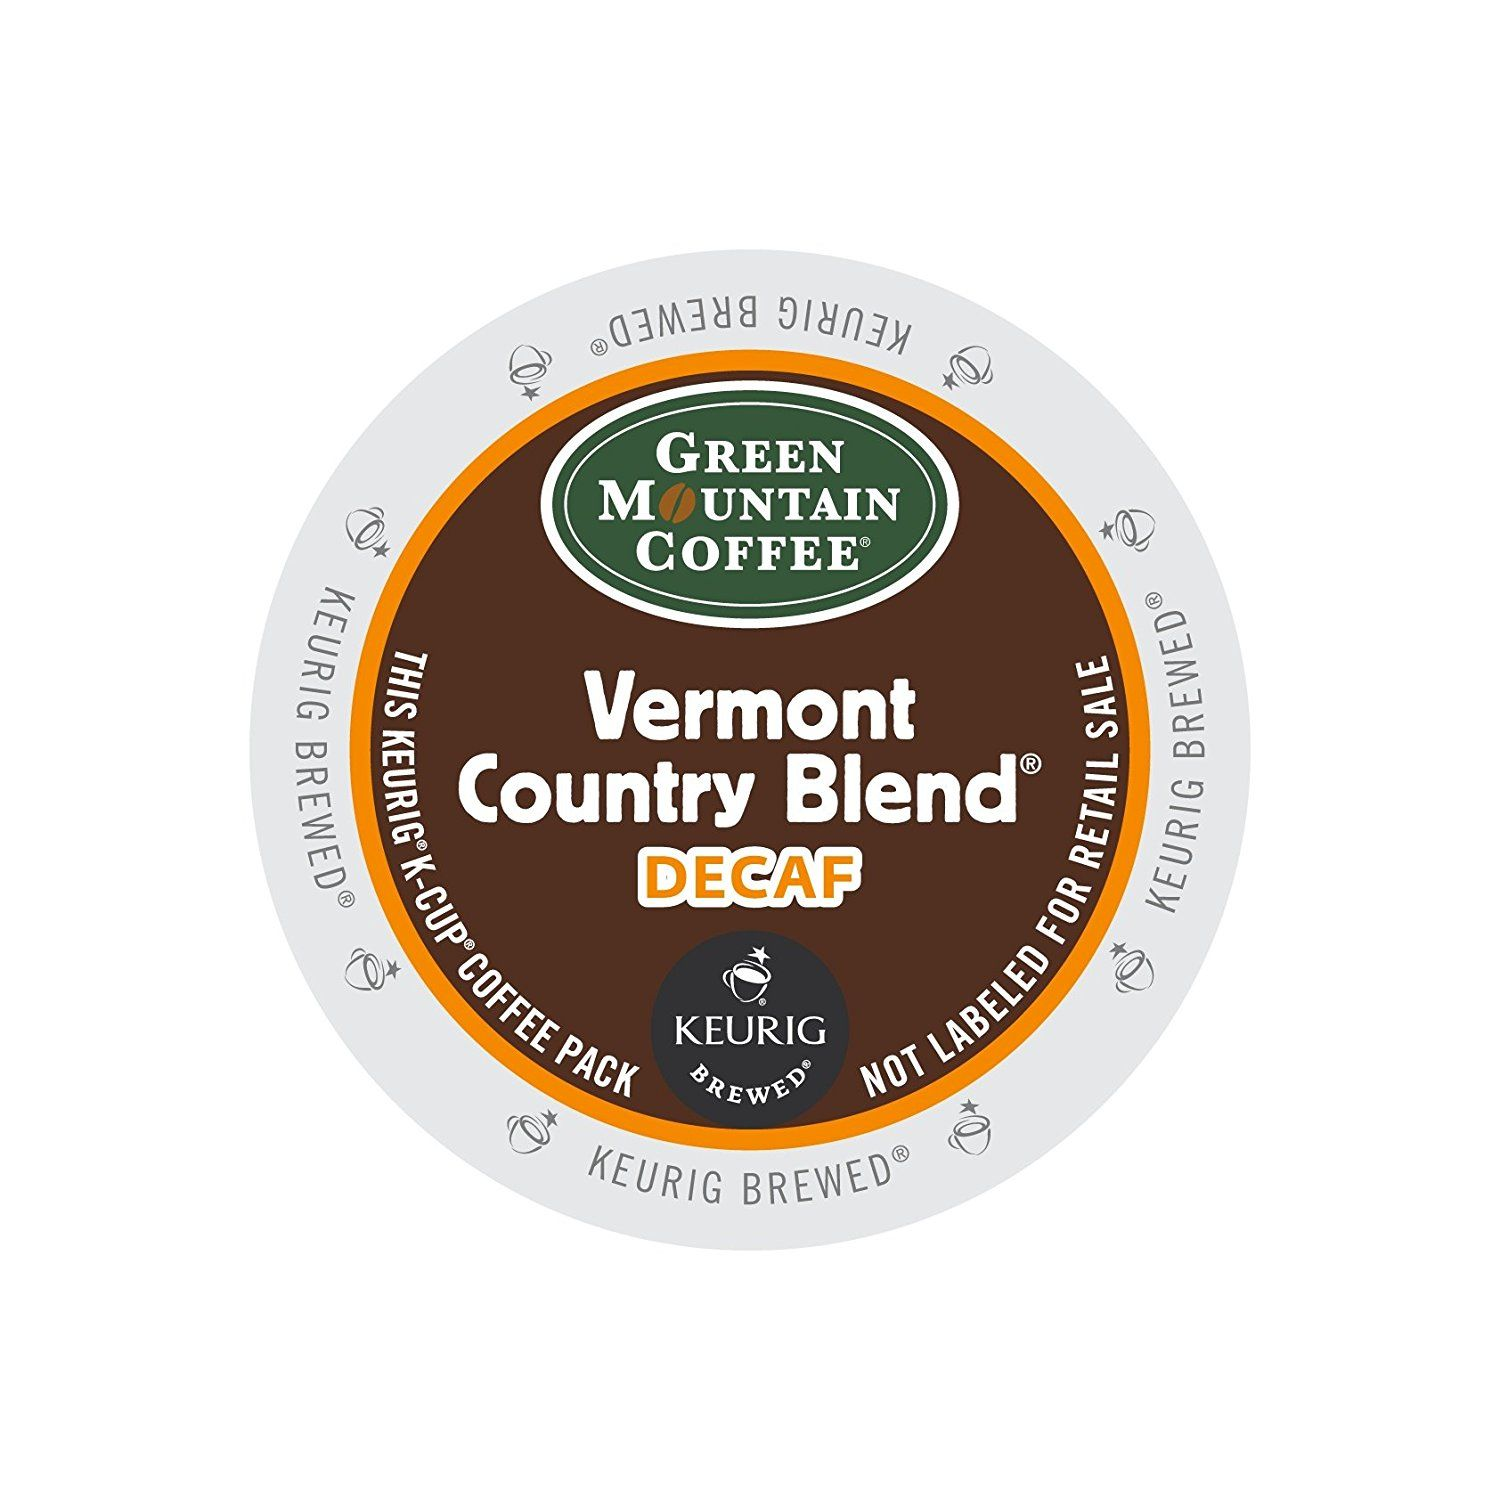 Green Mountain Coffee Vermont Country Blend Decaf KCups